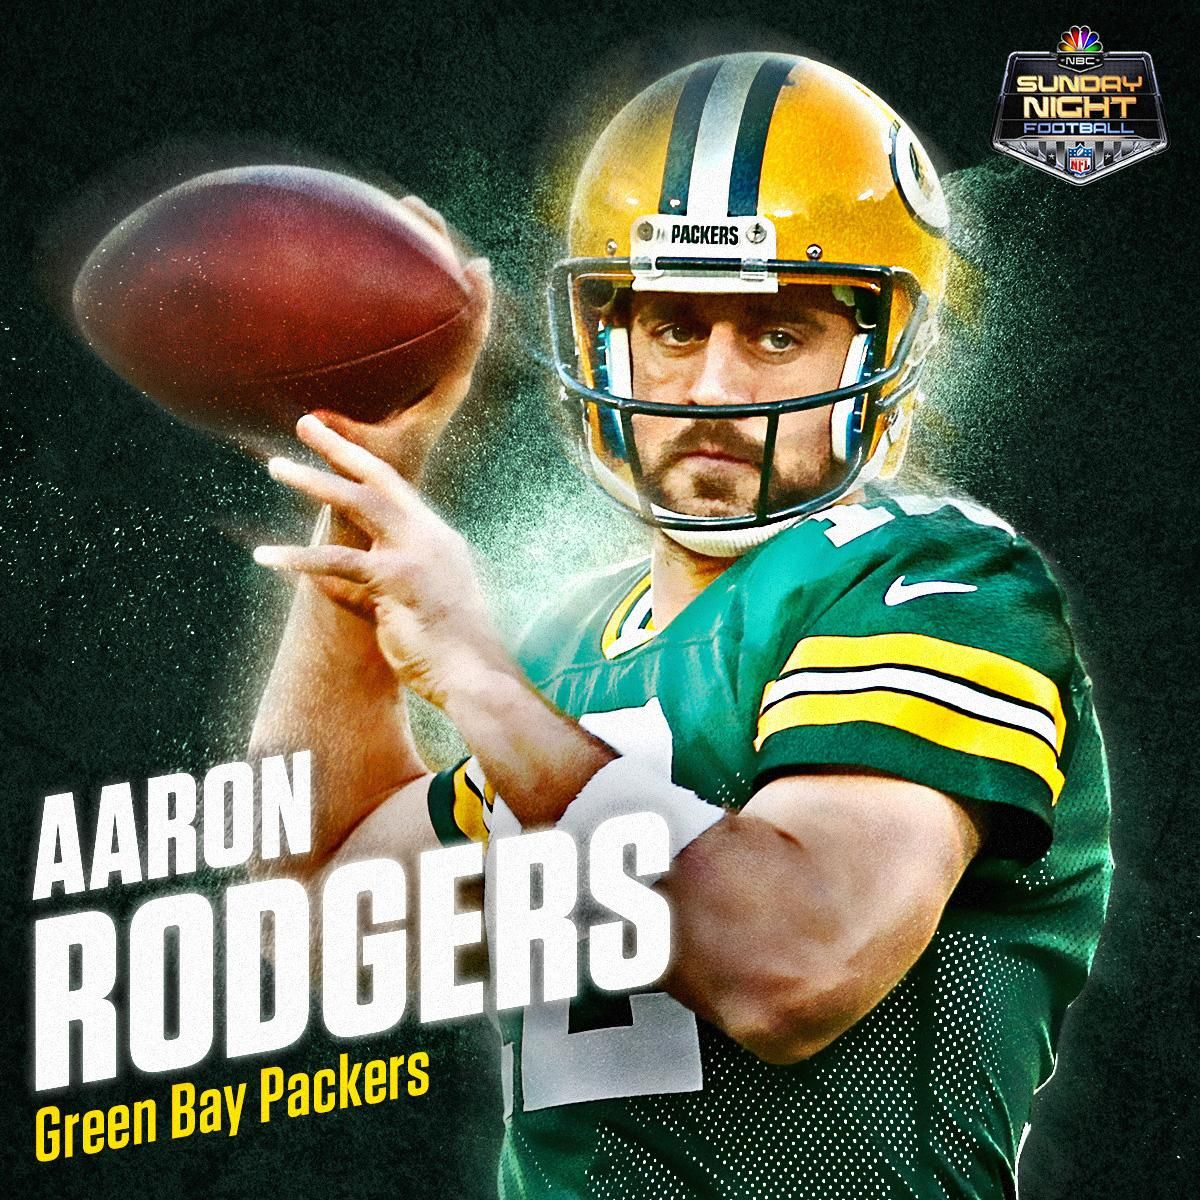 Packers Rodgers Green Bay Sports Graphic Design Green Bay Packers